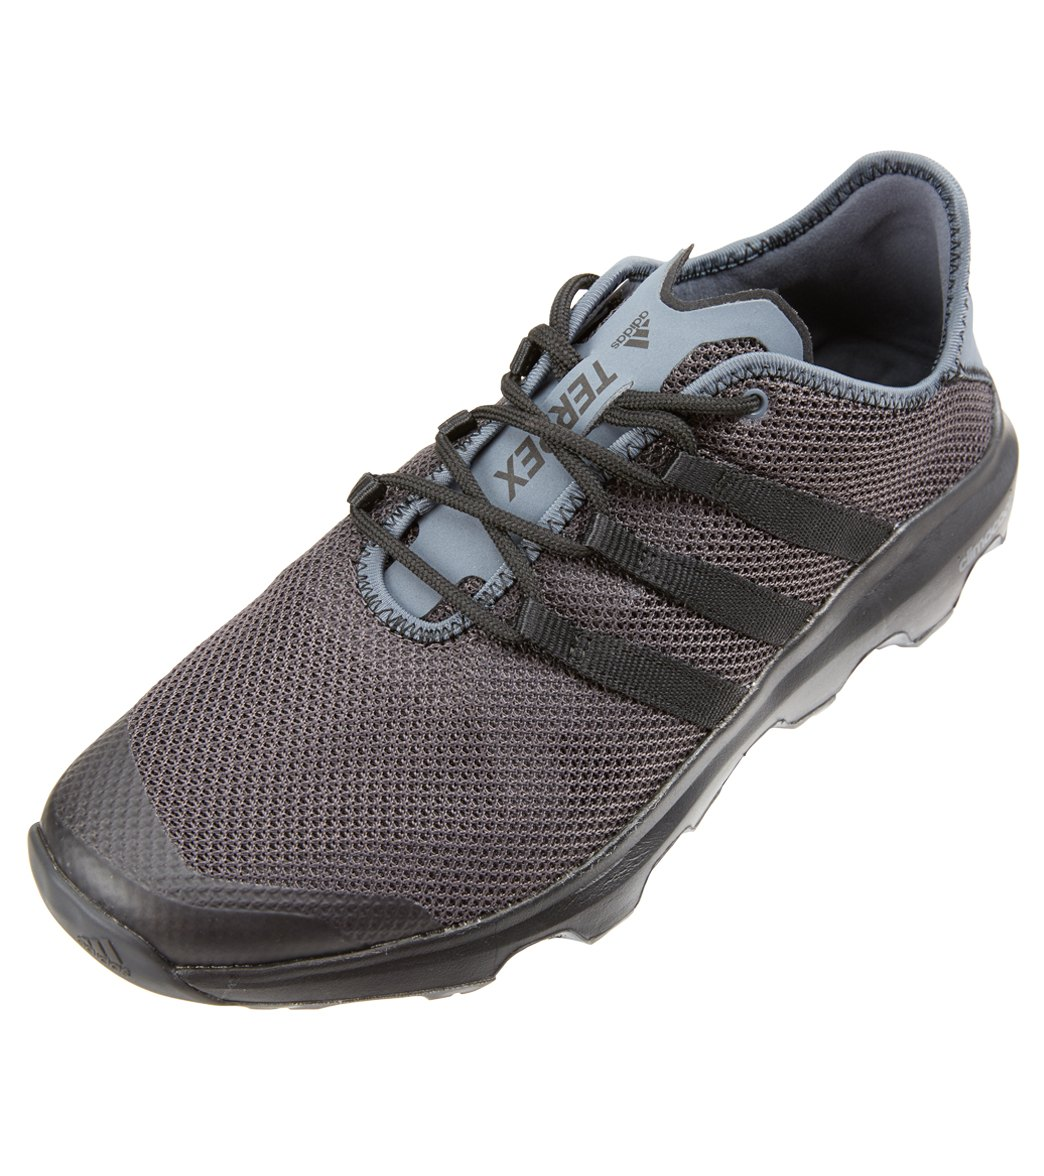 8da8f0137fff9 Adidas Men s Climacool Voyager Water Shoe at SwimOutlet.com ...